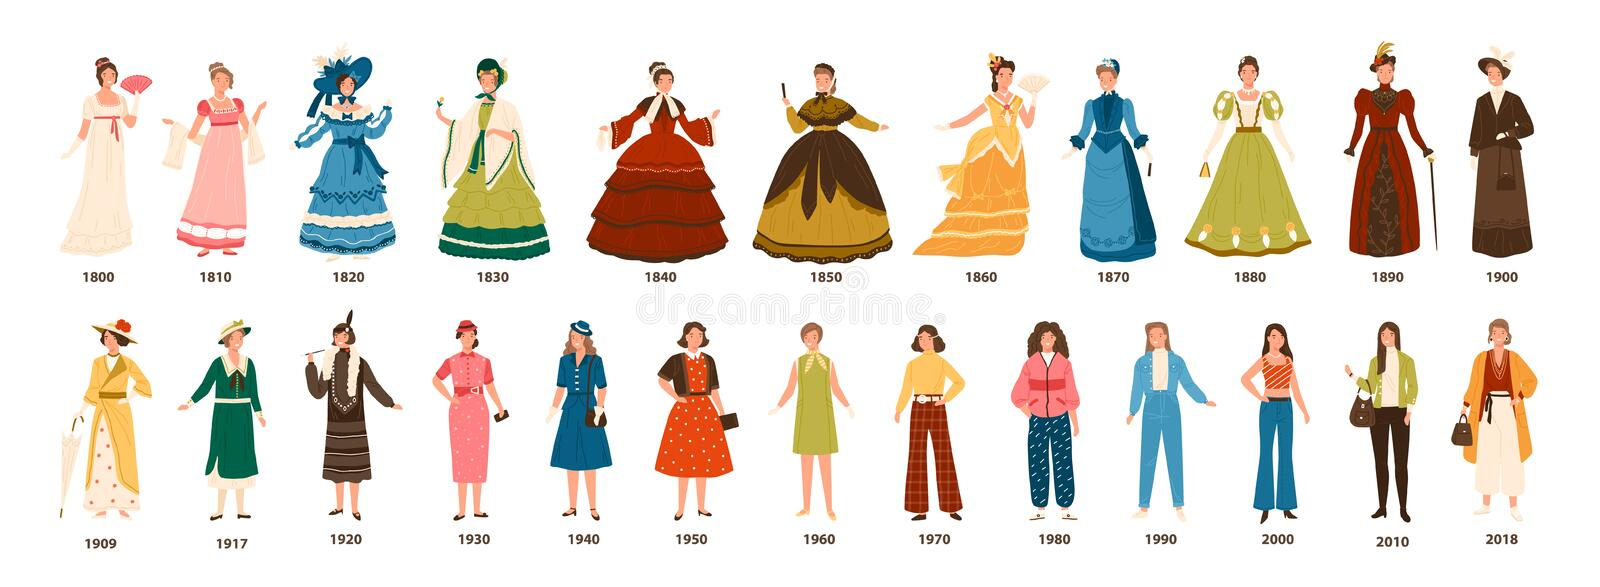 History of fashion. Collection of female clothing by decades. Bundle of pretty women dressed in stylish clothes isolated royalty free illustration